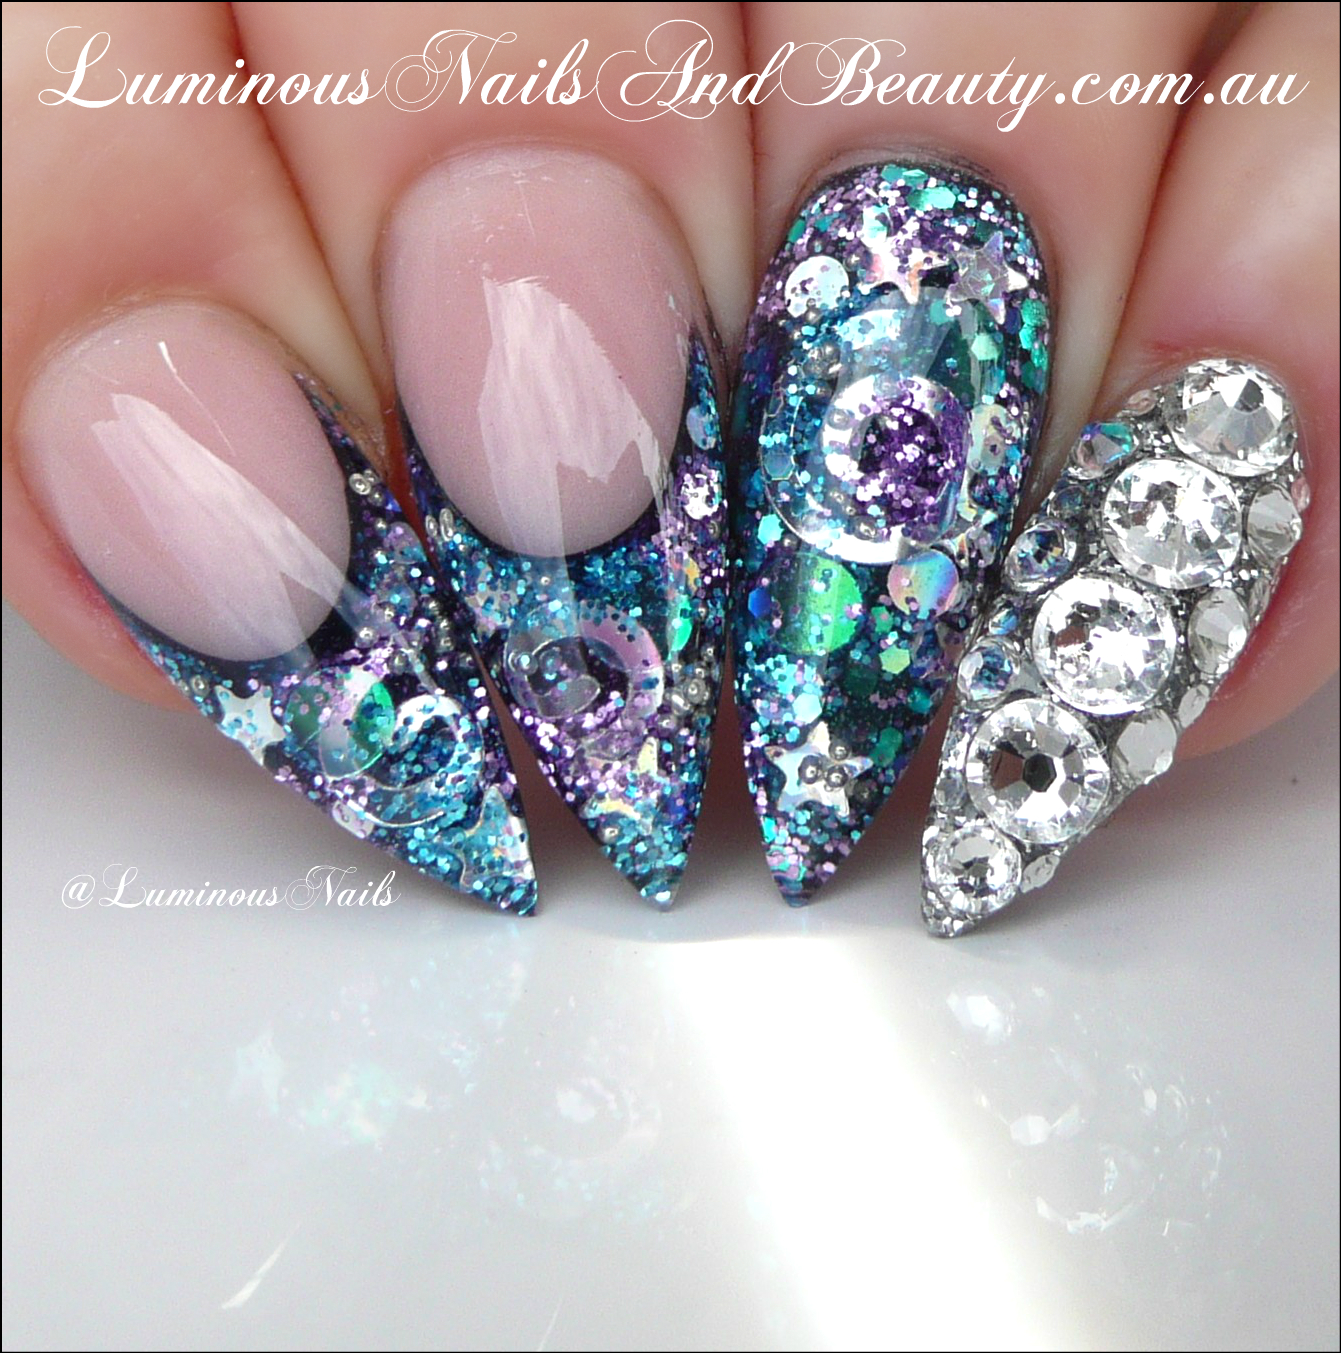 Luminous Nails: Galaxy Acrylic Nails... Available in Luminous Nails ...